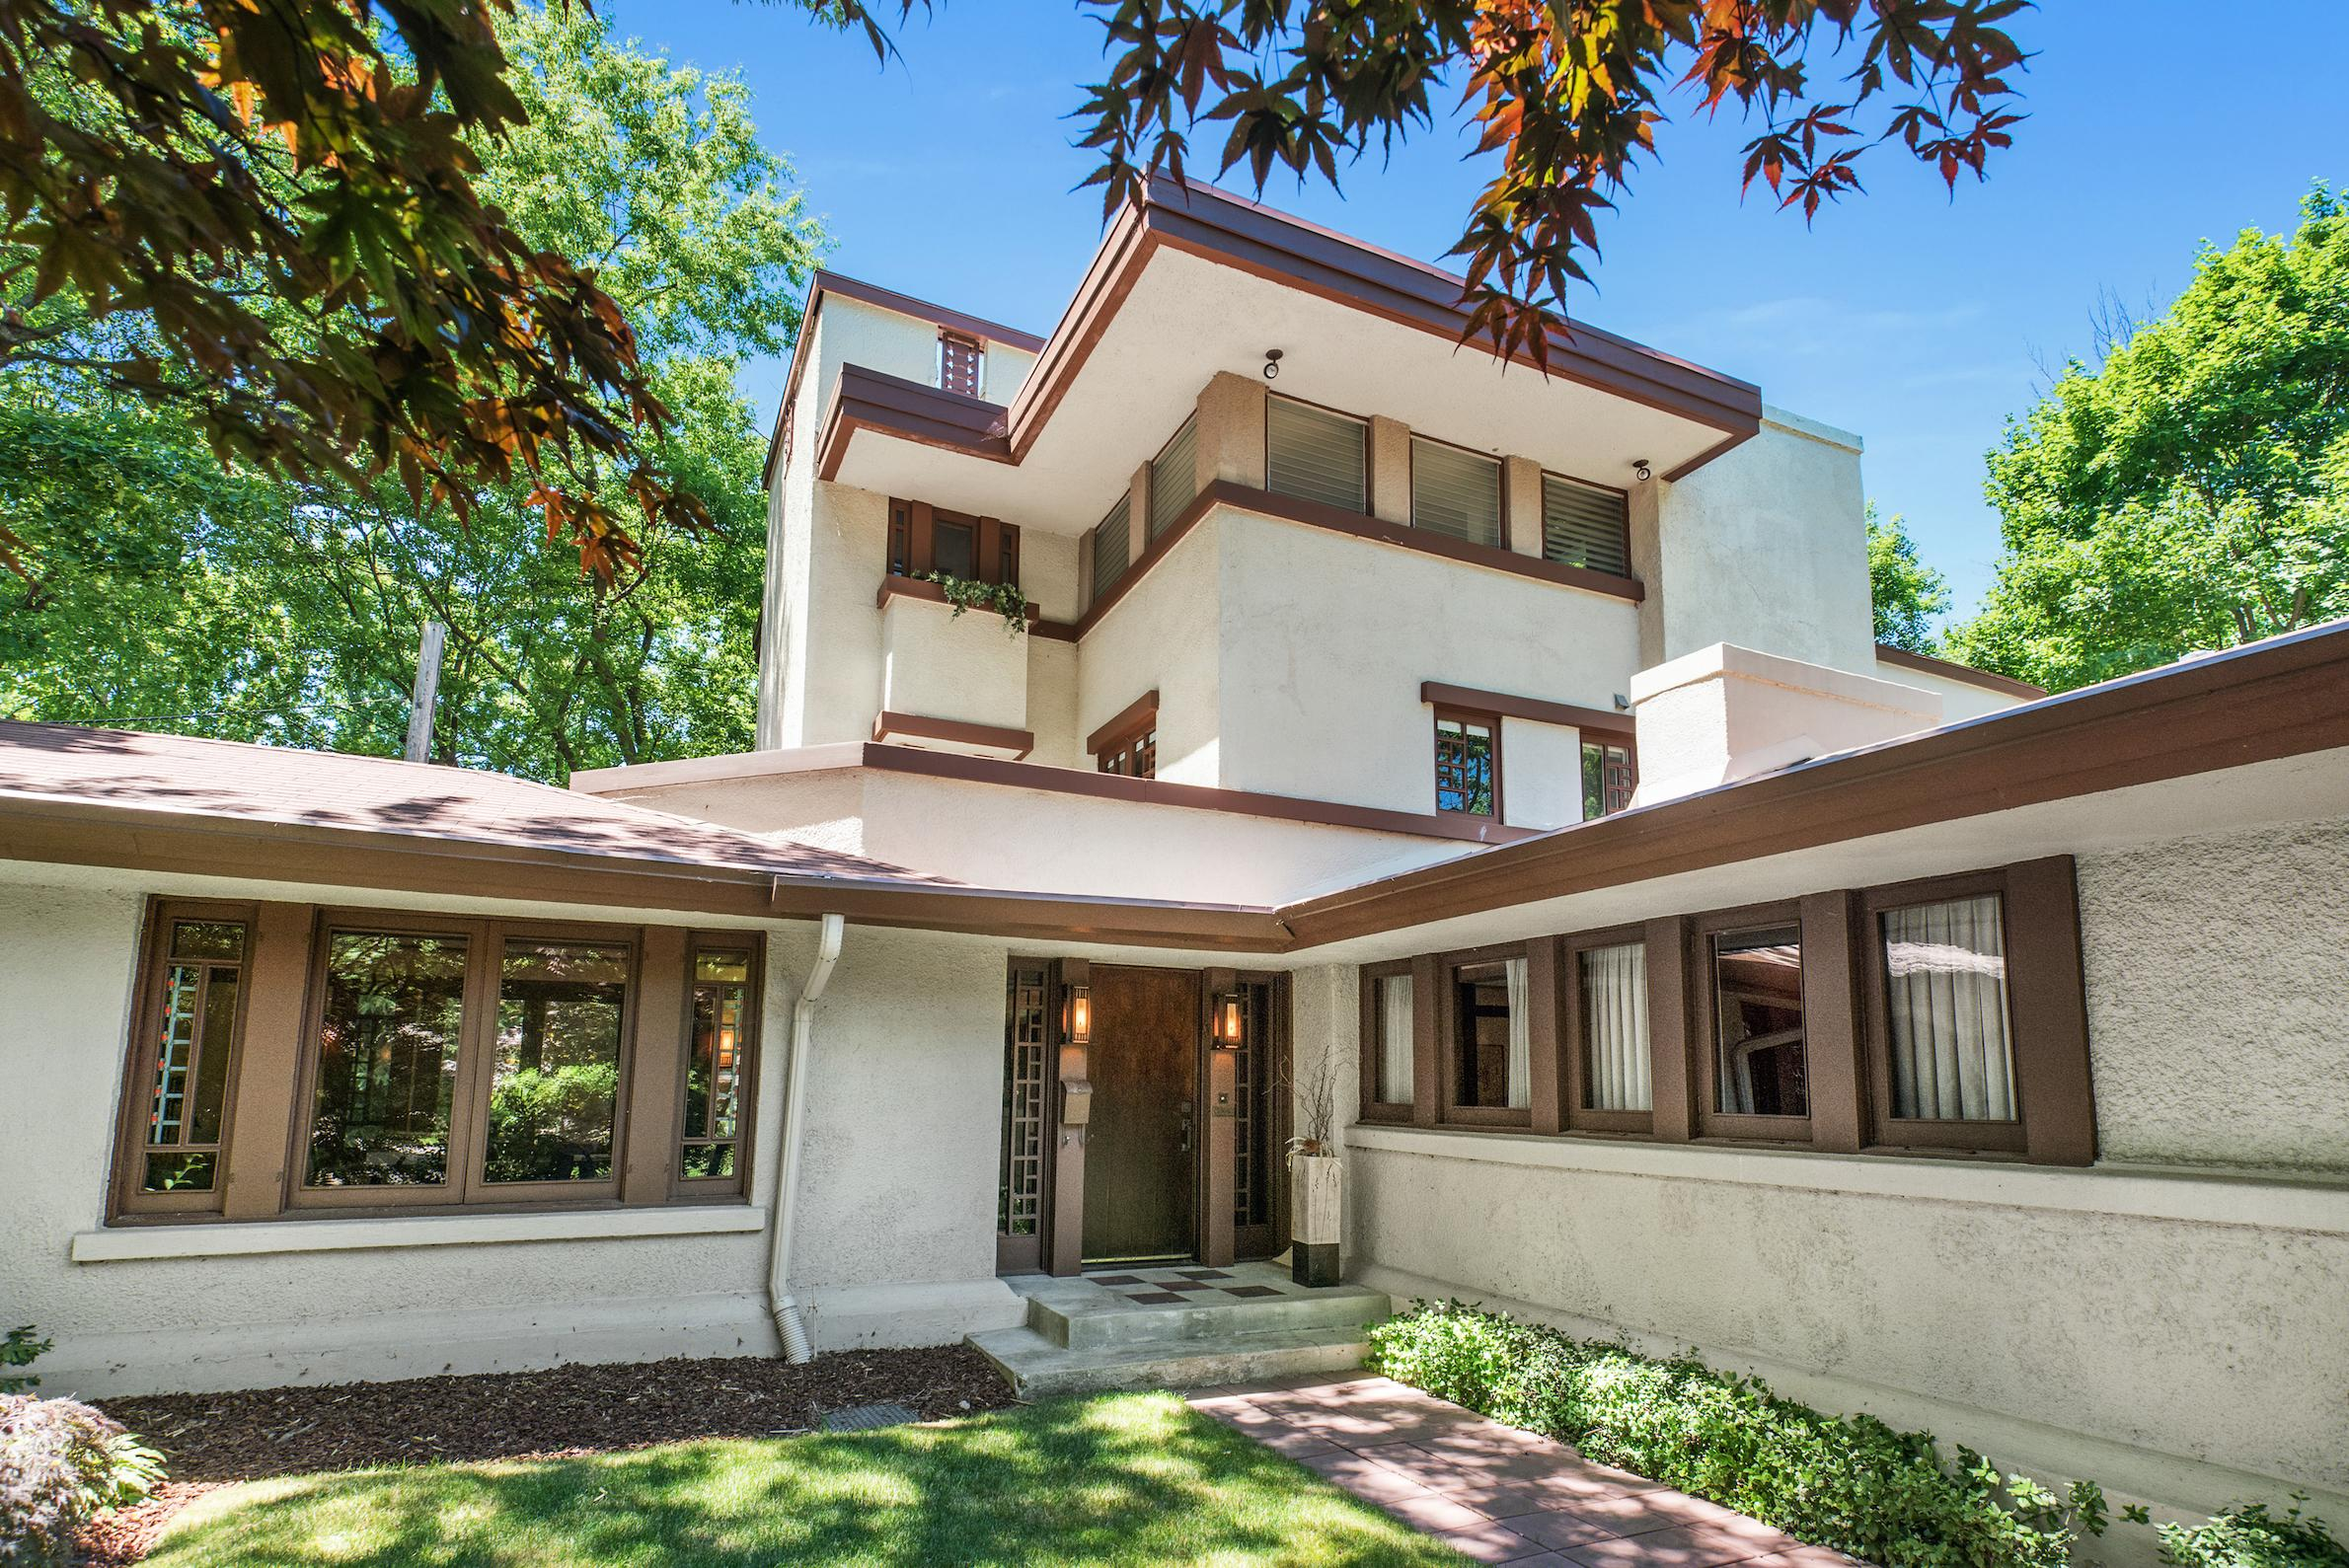 5 frank lloyd wright houses for sale right now